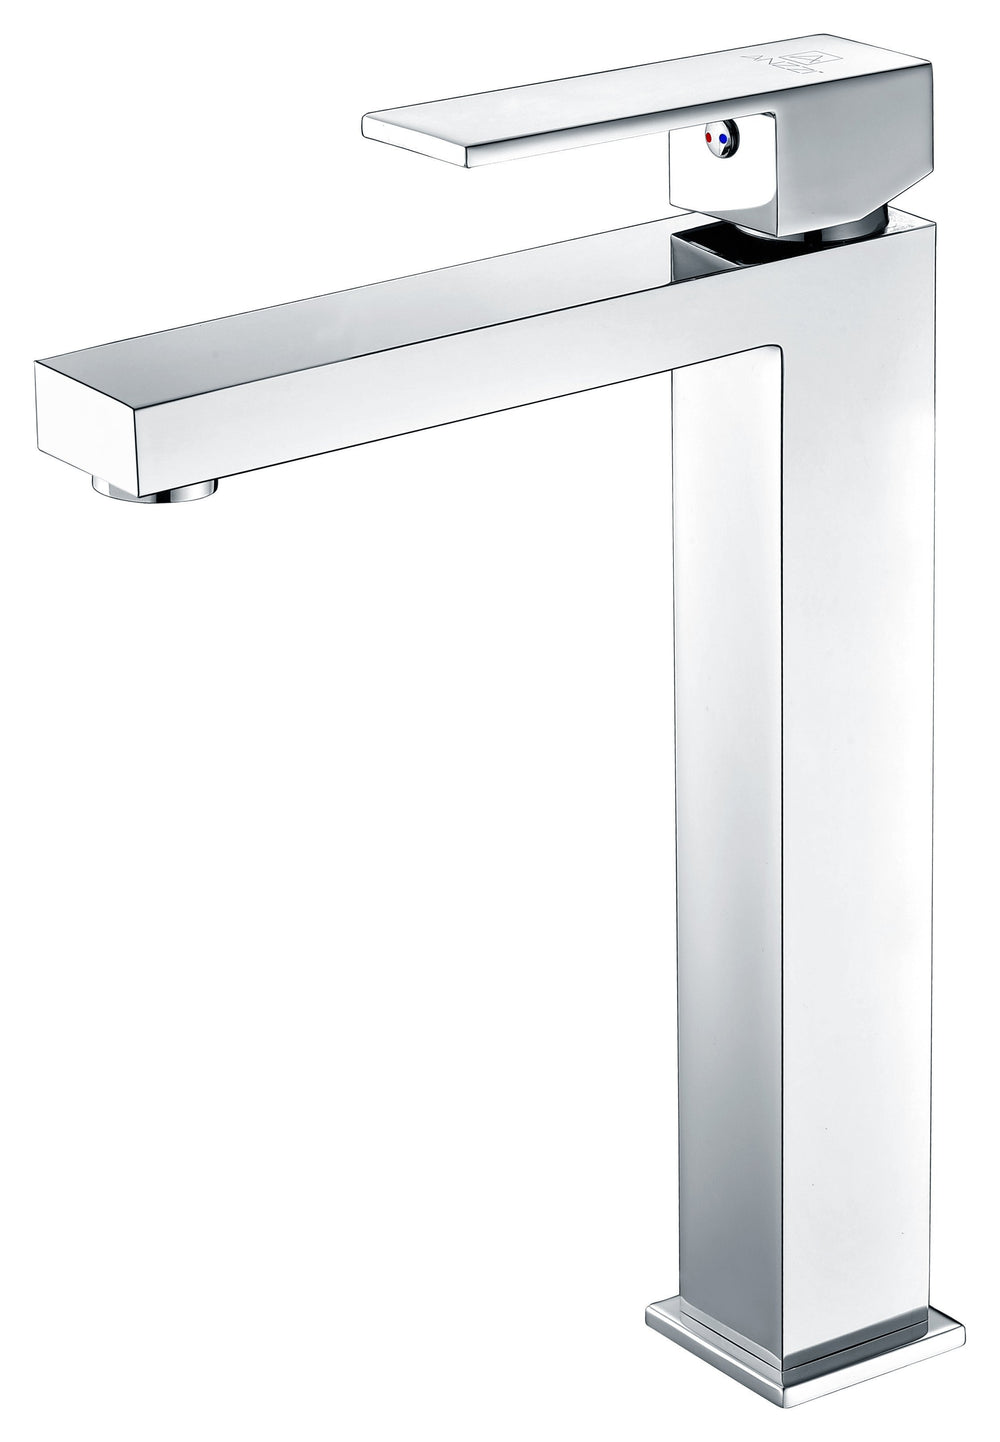 ANZZI Accent Series LSAZ047-096 Bathroom Sink Bathroom Sink ANZZI